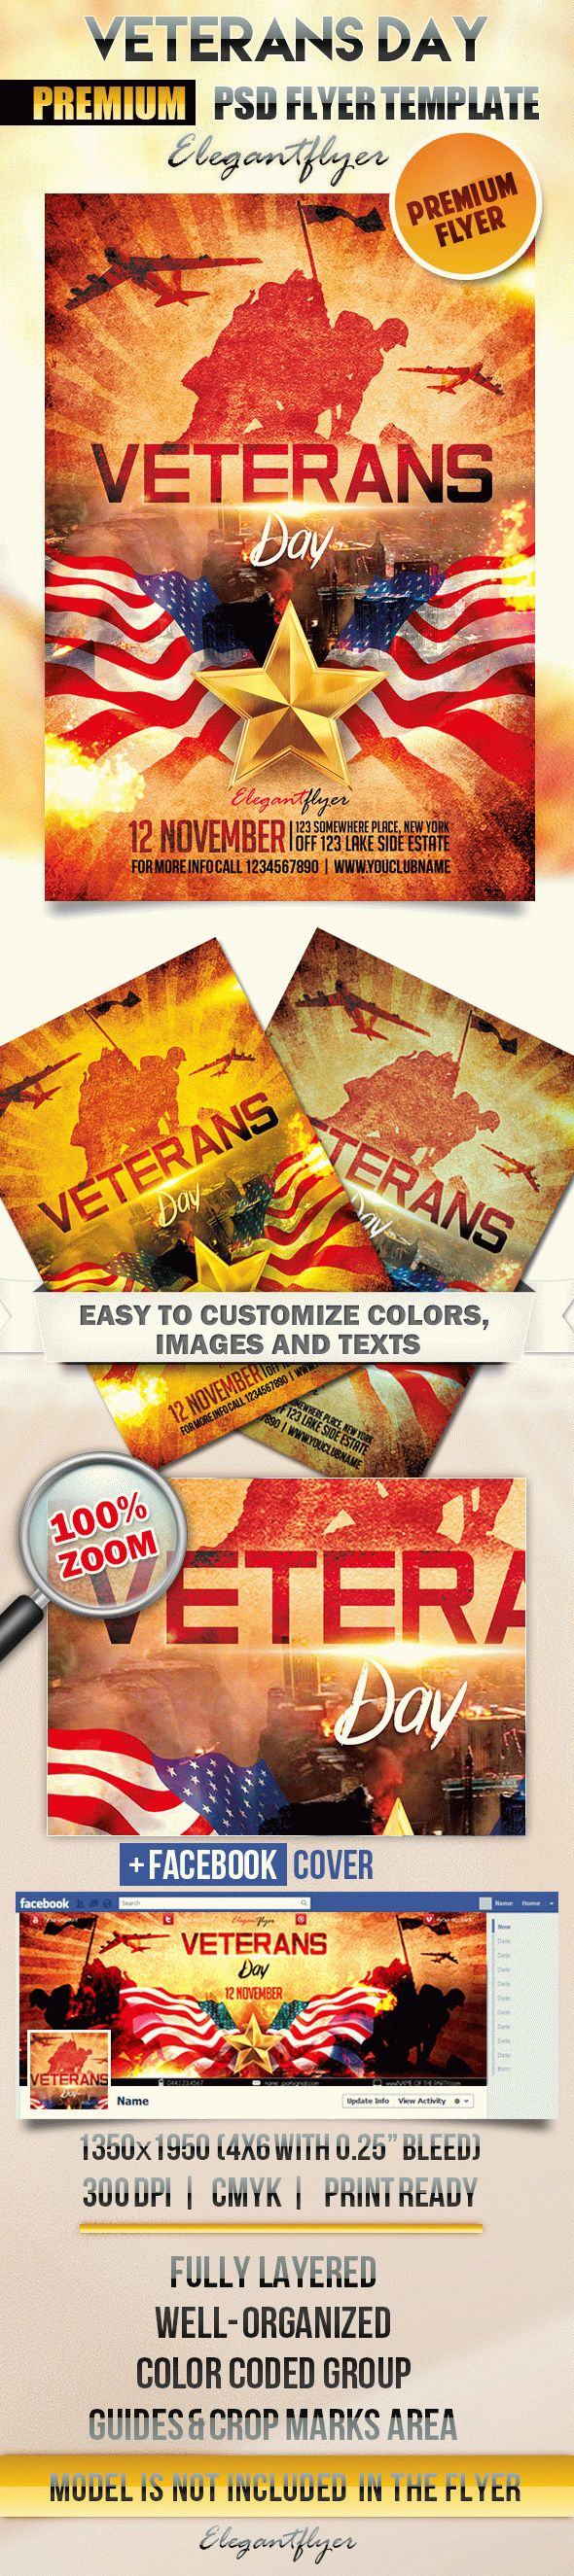 Veterans Day Parades Flyer Template